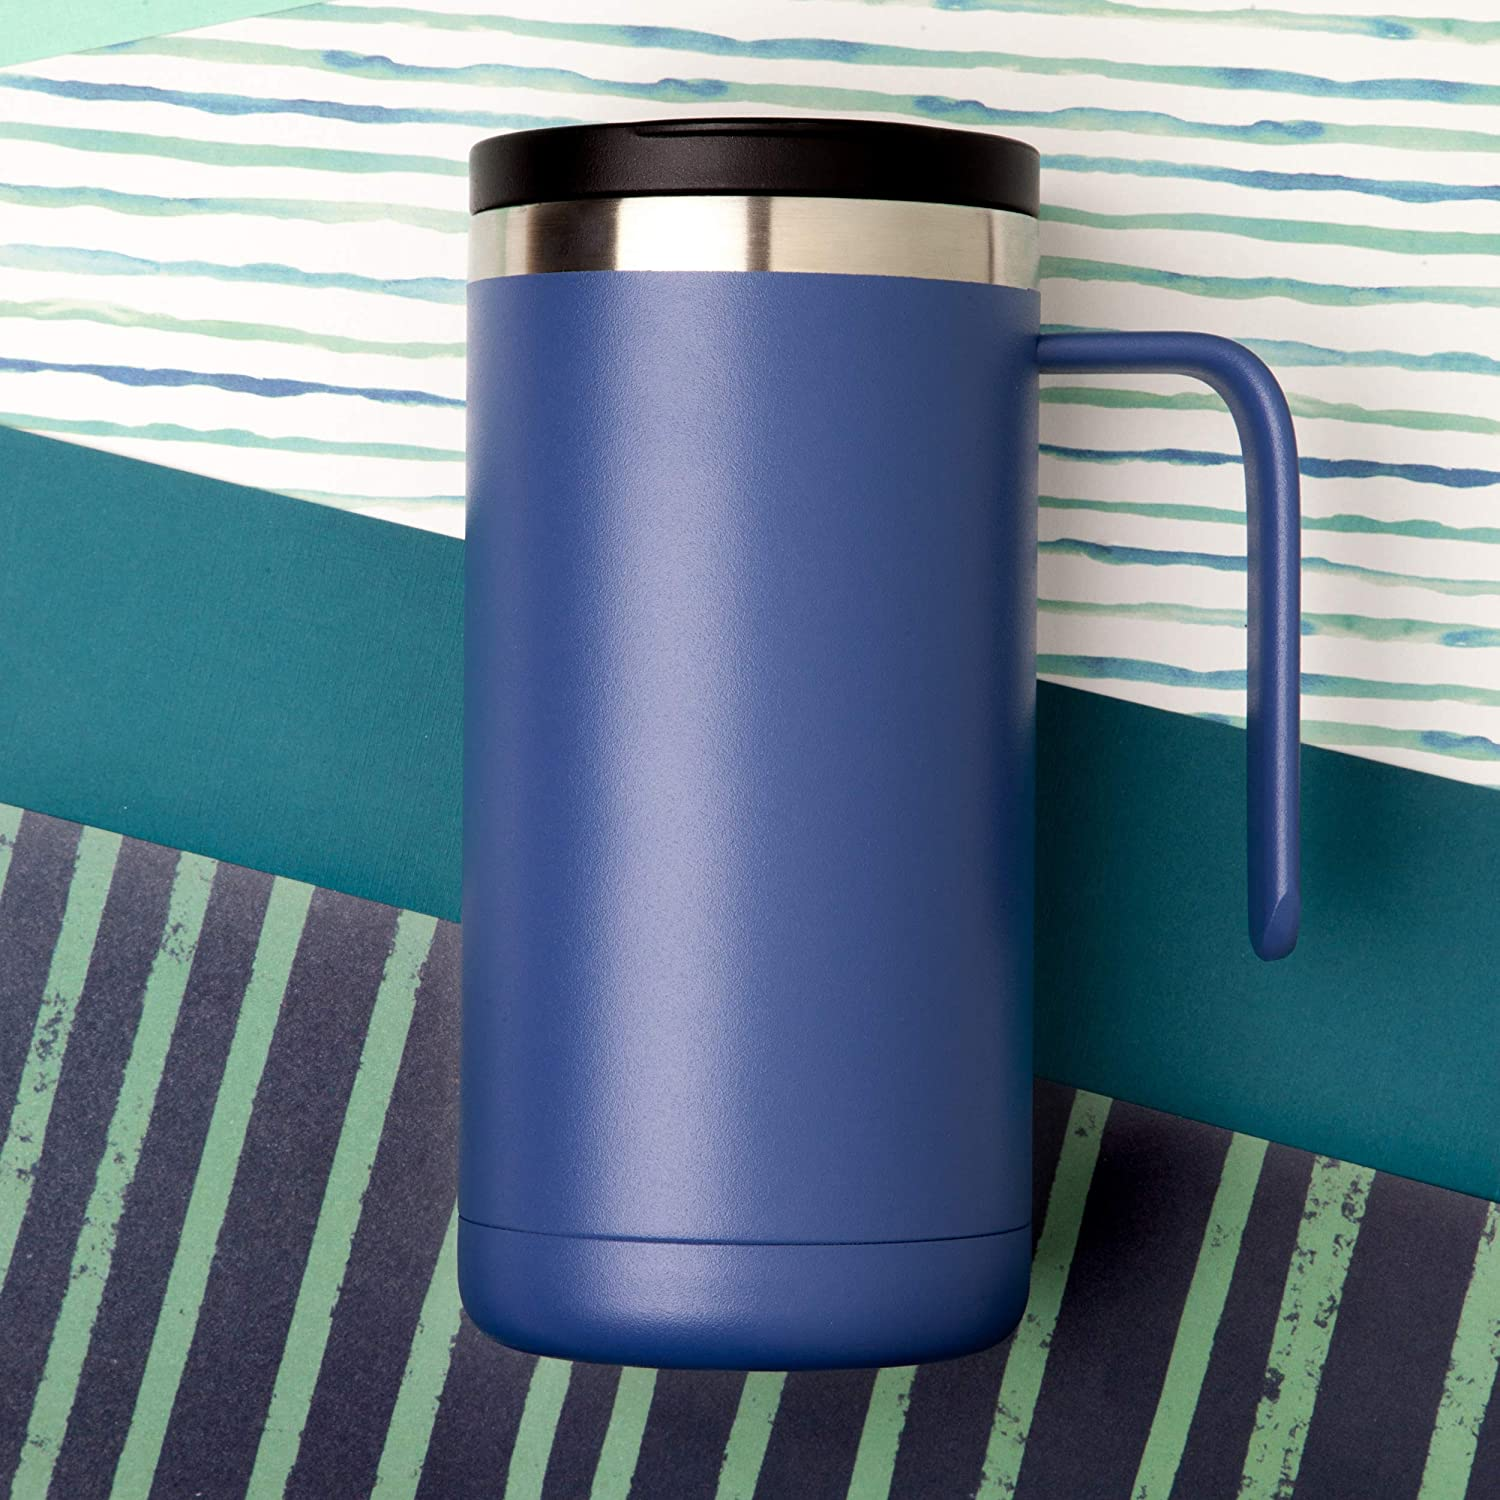 Iconiq Stainless Steel Vacuum Insulated Tumbler Mug With Built In Handle And Splash Proof Lid 20 Ounce Dusk Blue Travel To Go Drinkware Kolenik Travel Mugs Tumblers